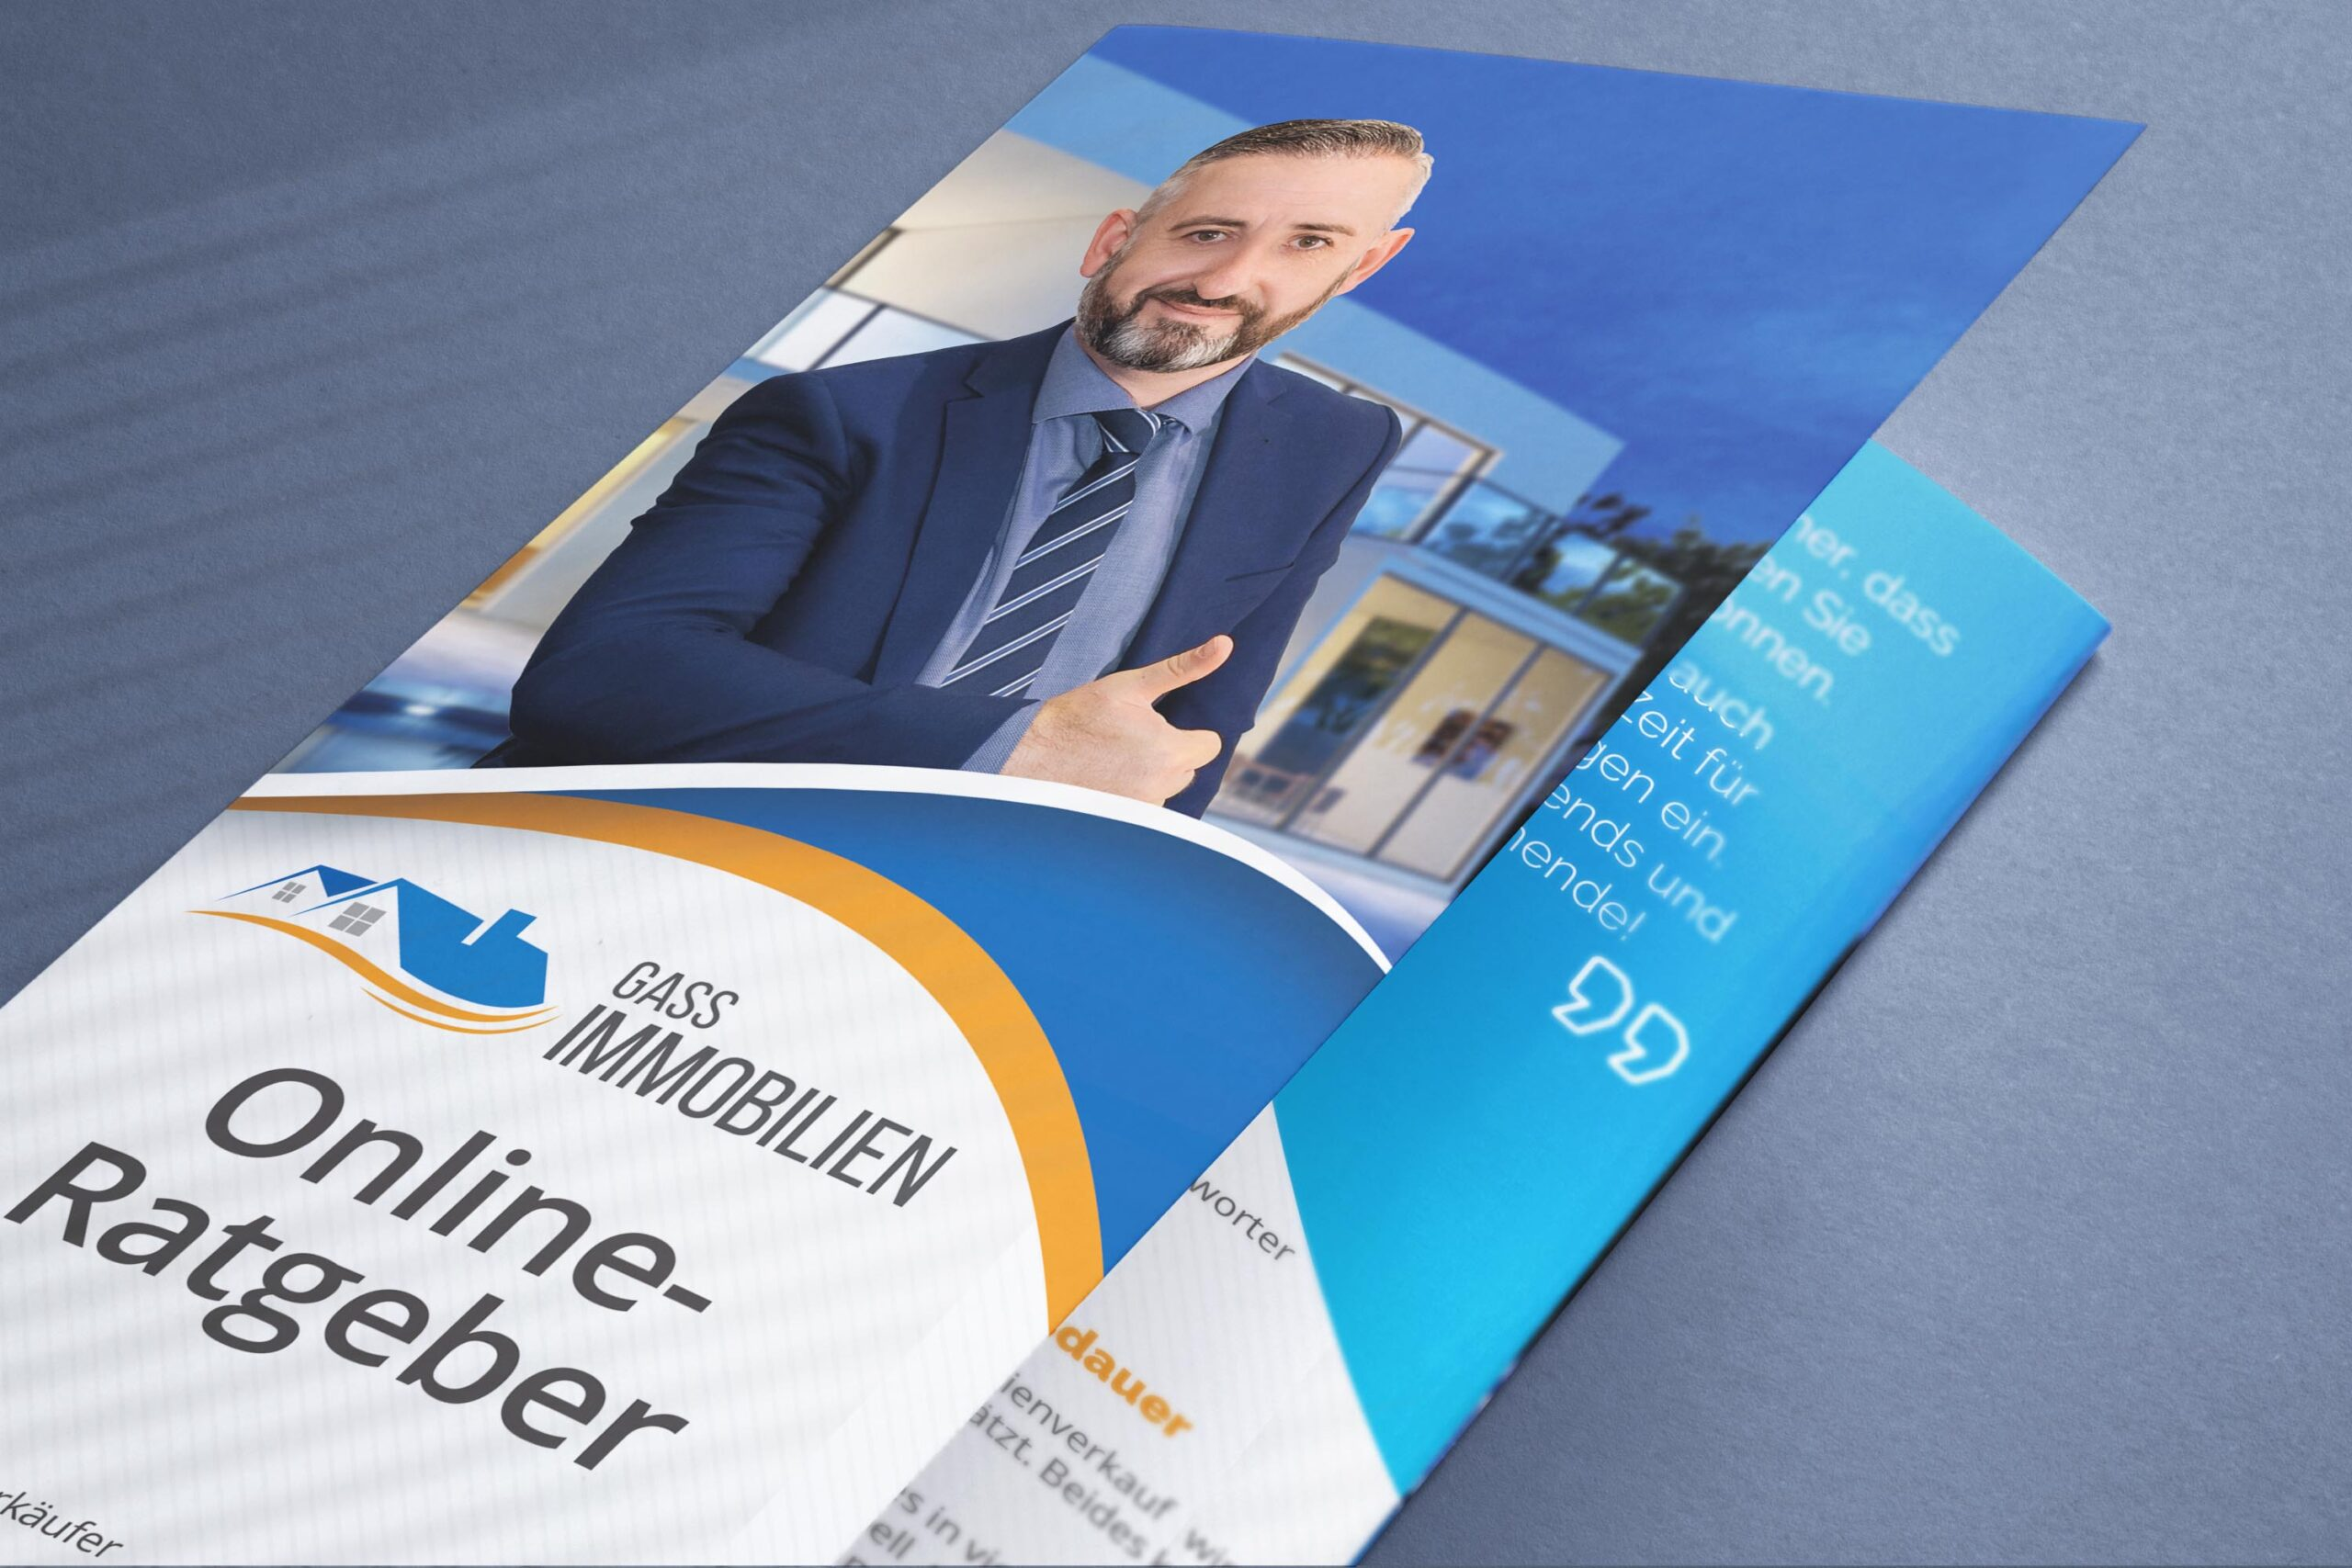 Closed tri-fold flyer brochure mock-up close-up view